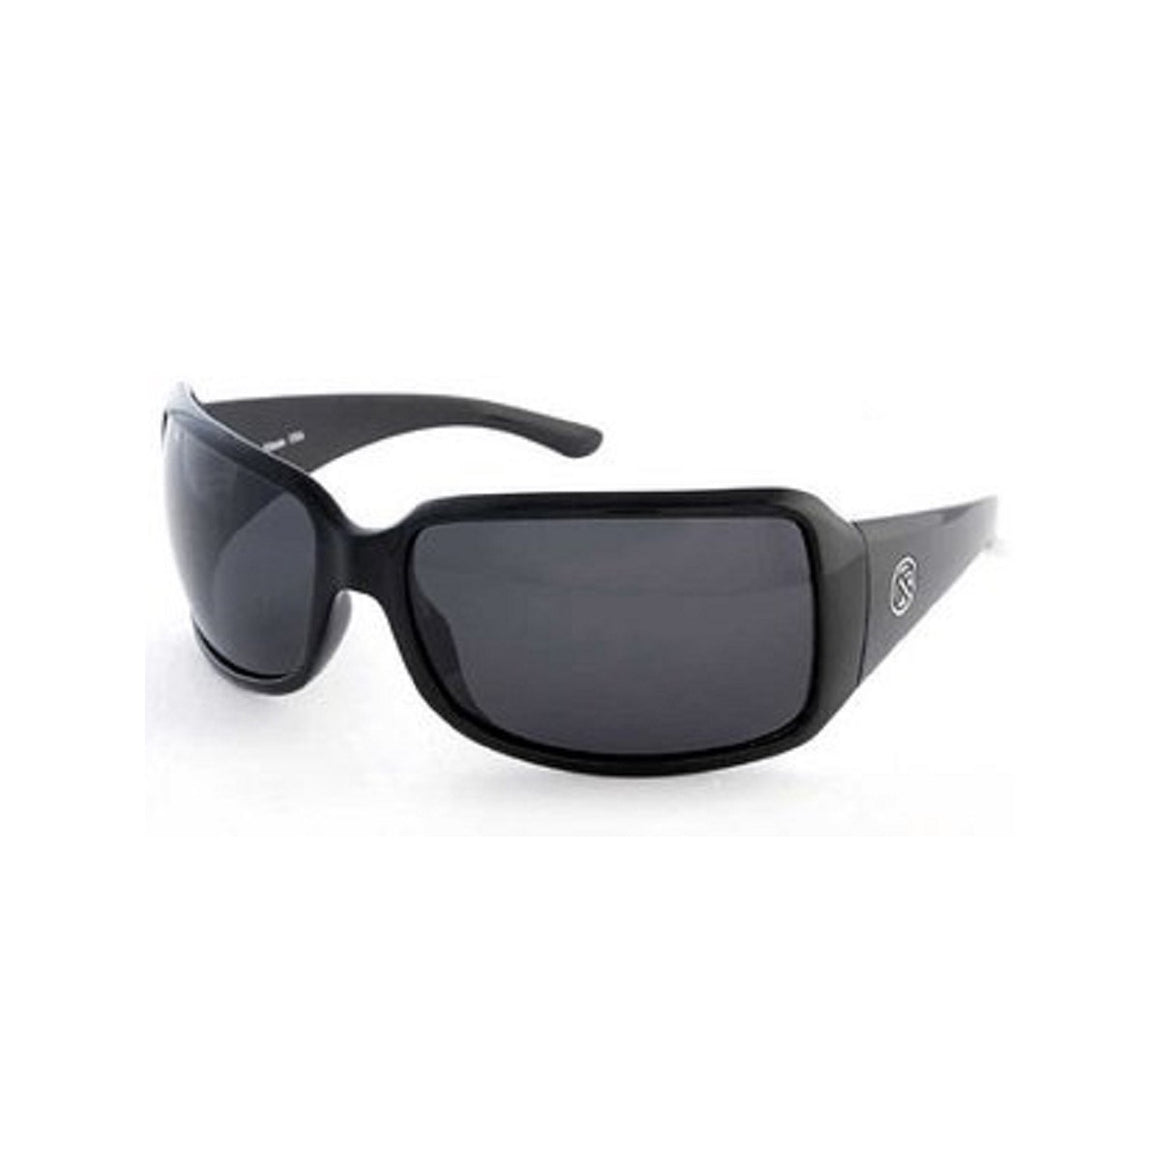 Filtrate Motel Black Polarized Unisex Sunglasses